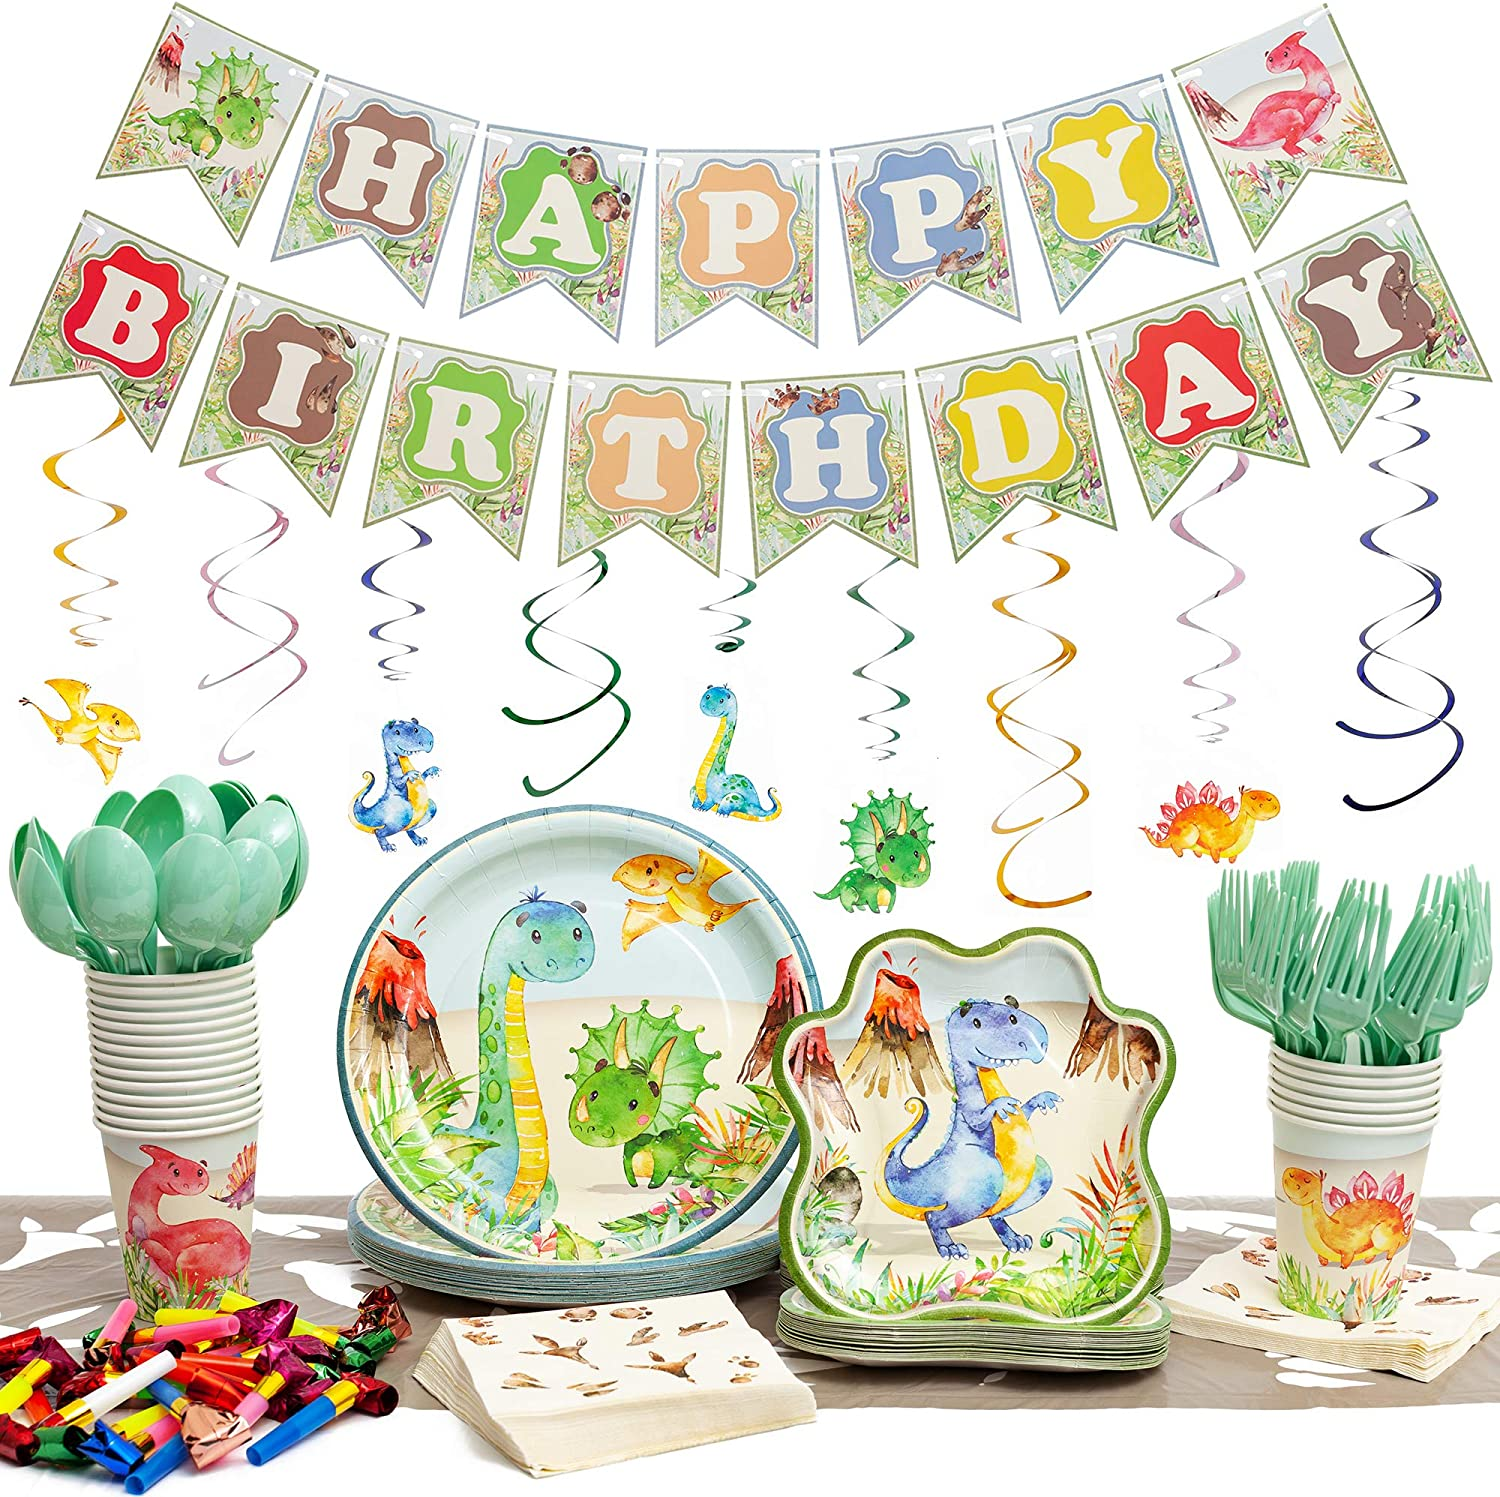 192 Pieces Dinosaur Party Supplies Pack - Serves 20 - Set Includes Favors - Plates - Cups - Napkins - Table Cloth - Cutlery - Birthday Banner and Decorations